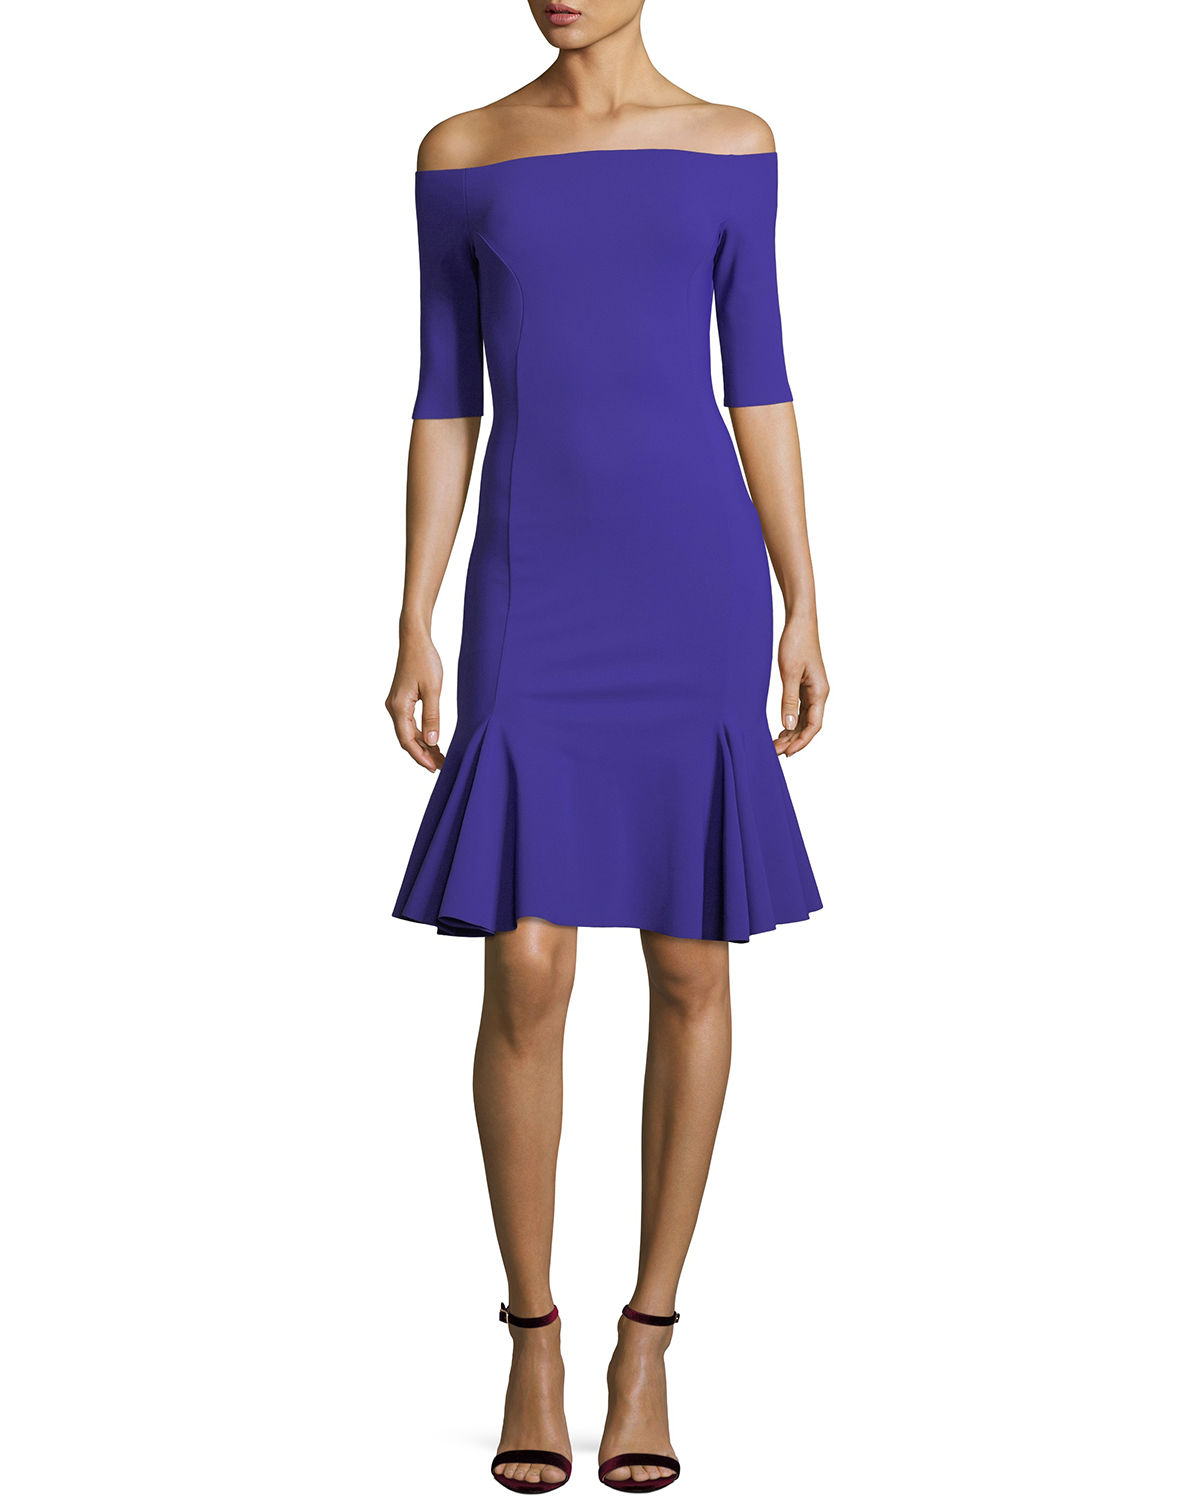 a6a97cb4 Omaira Off-the-Shoulder Cocktail Dress